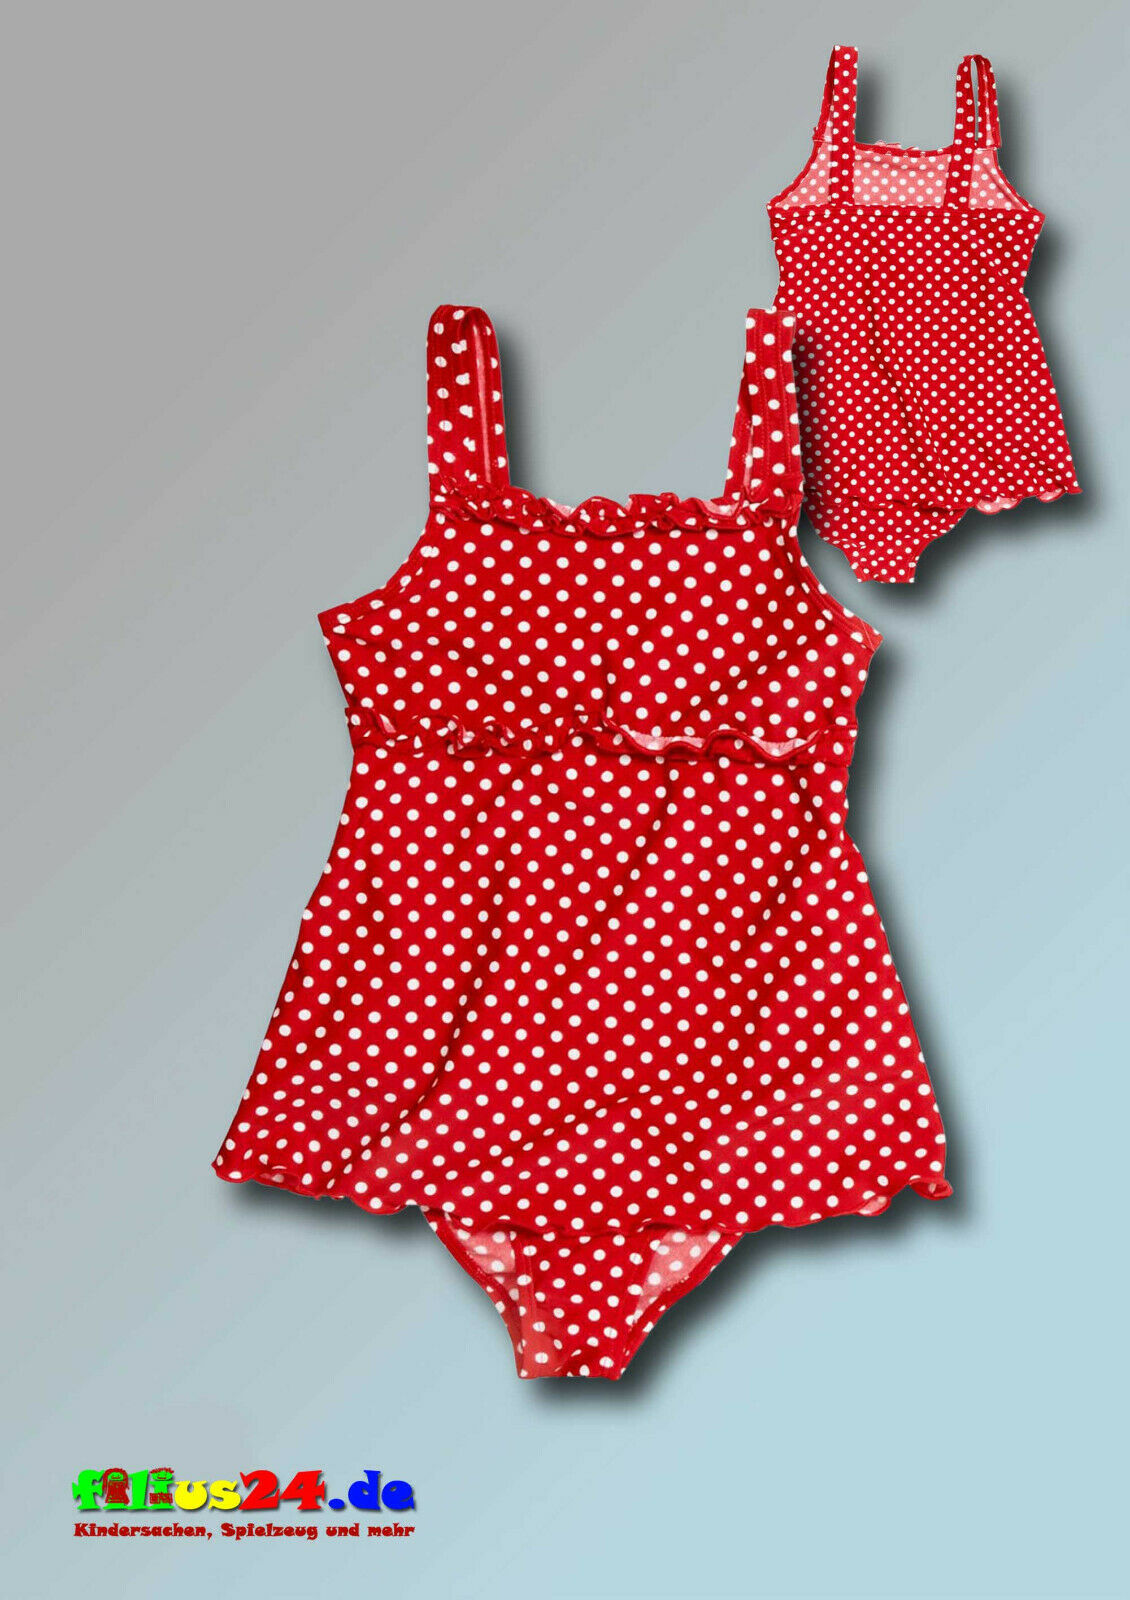 Playshoes UV Protection Girls Swimsuit Skirt Red With Dots